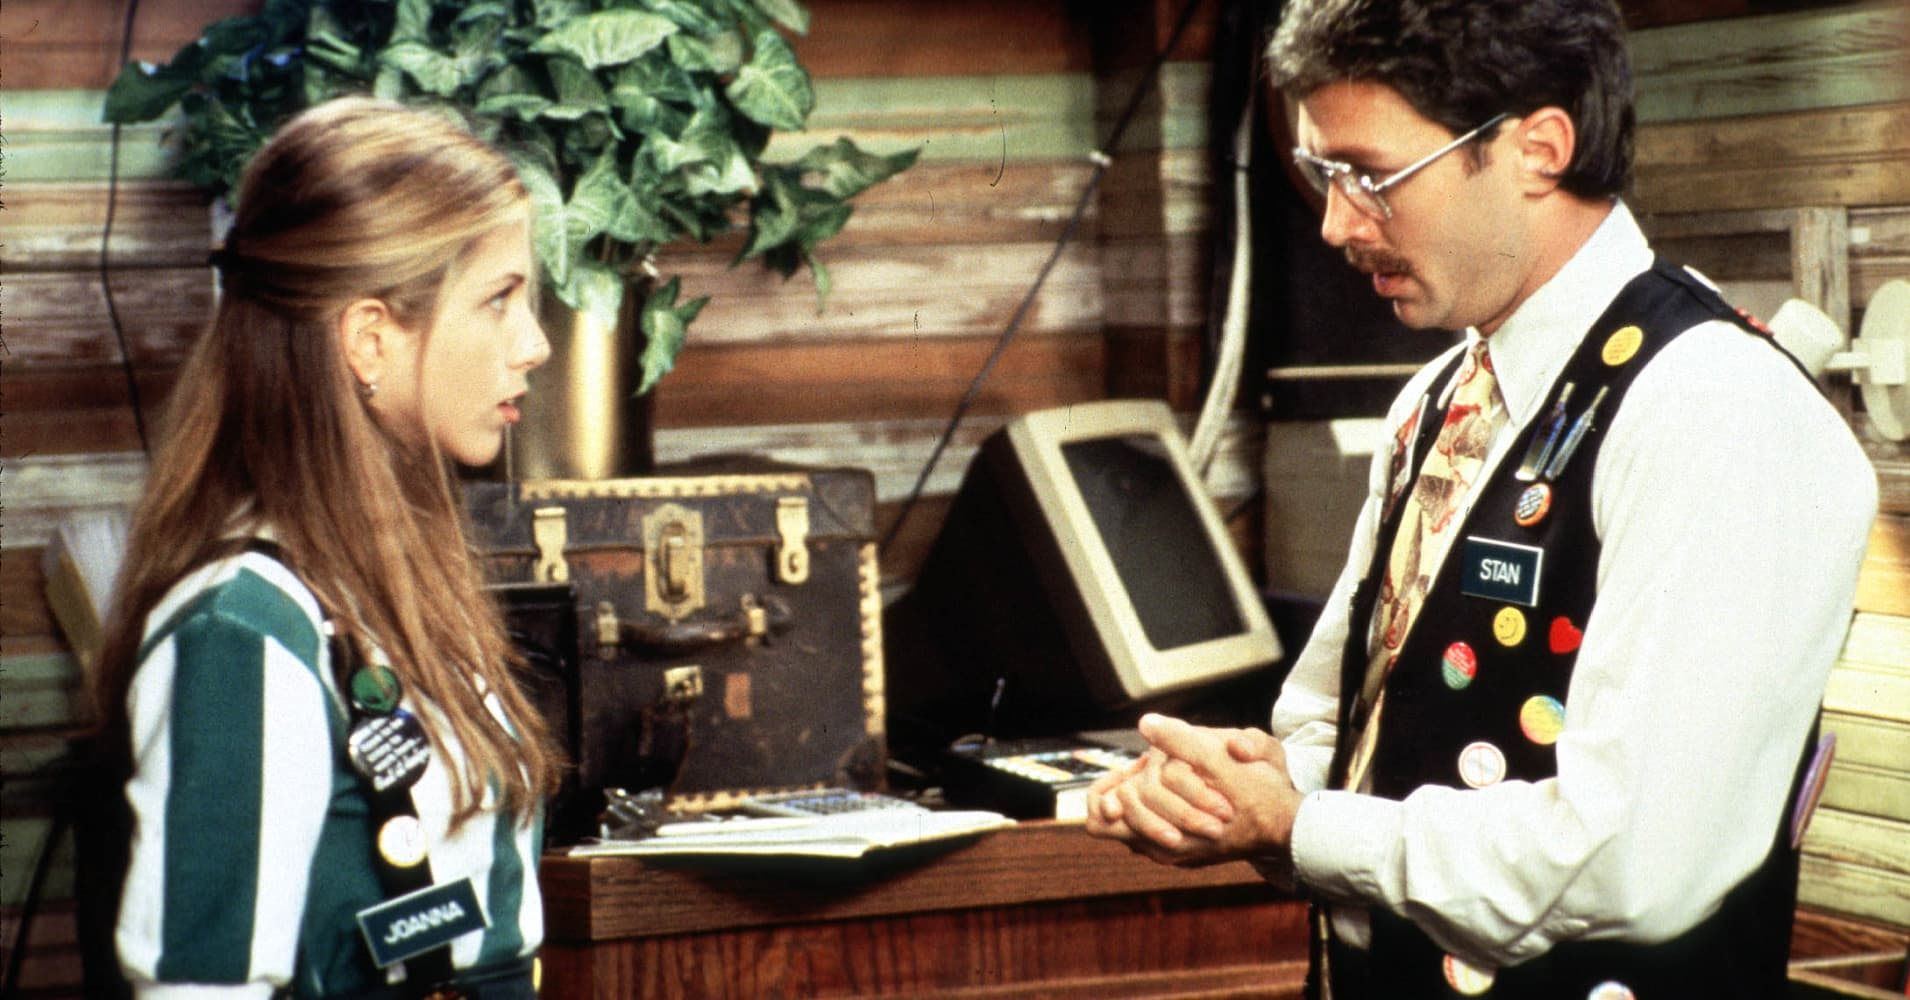 A scene of Twentieth Century Fox 'Office Space' with Jennifer Anniston